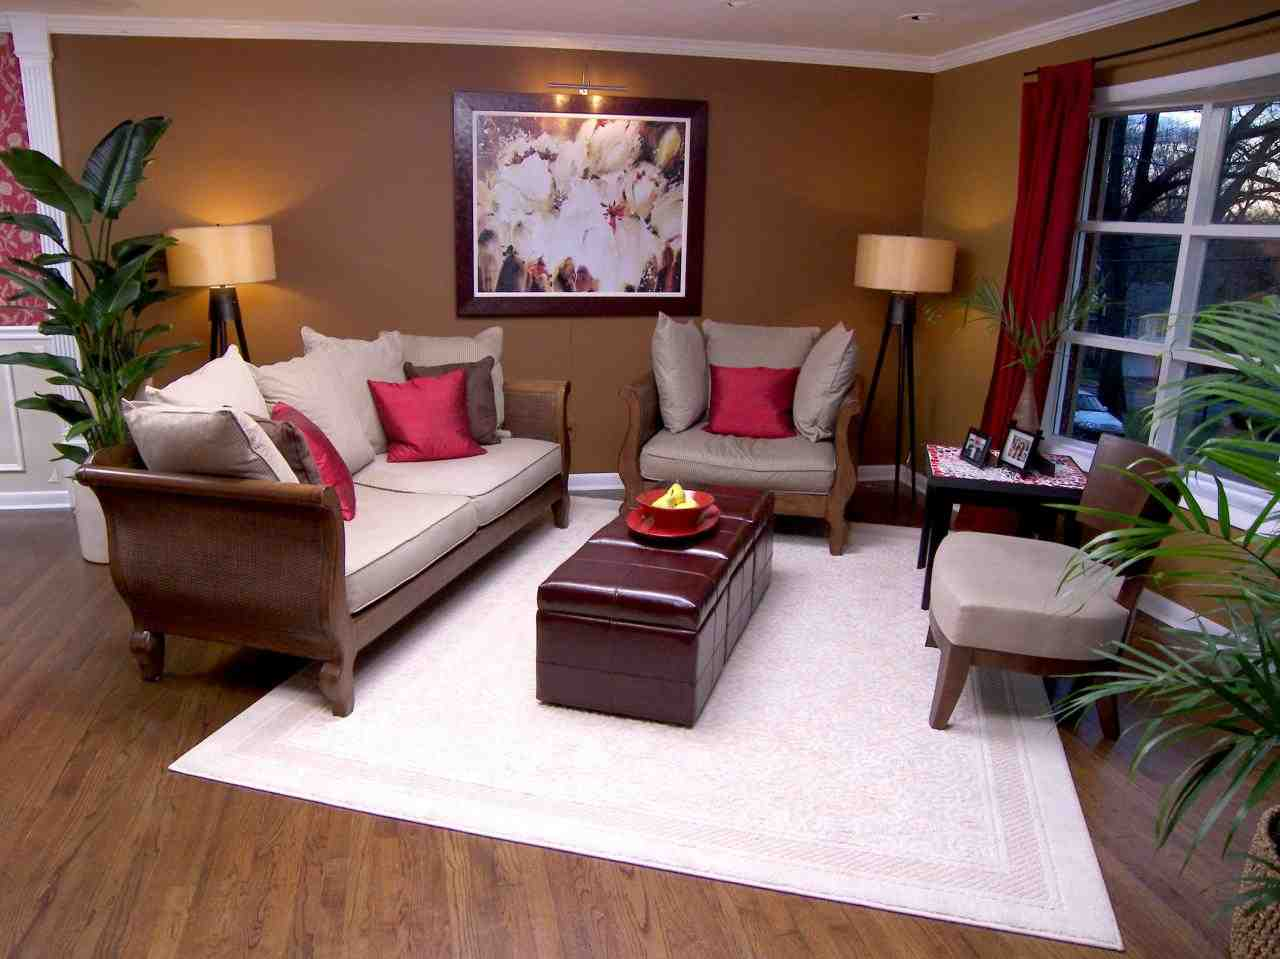 feng shui living room decorating feng shui living room style for peace and prosperity 23637